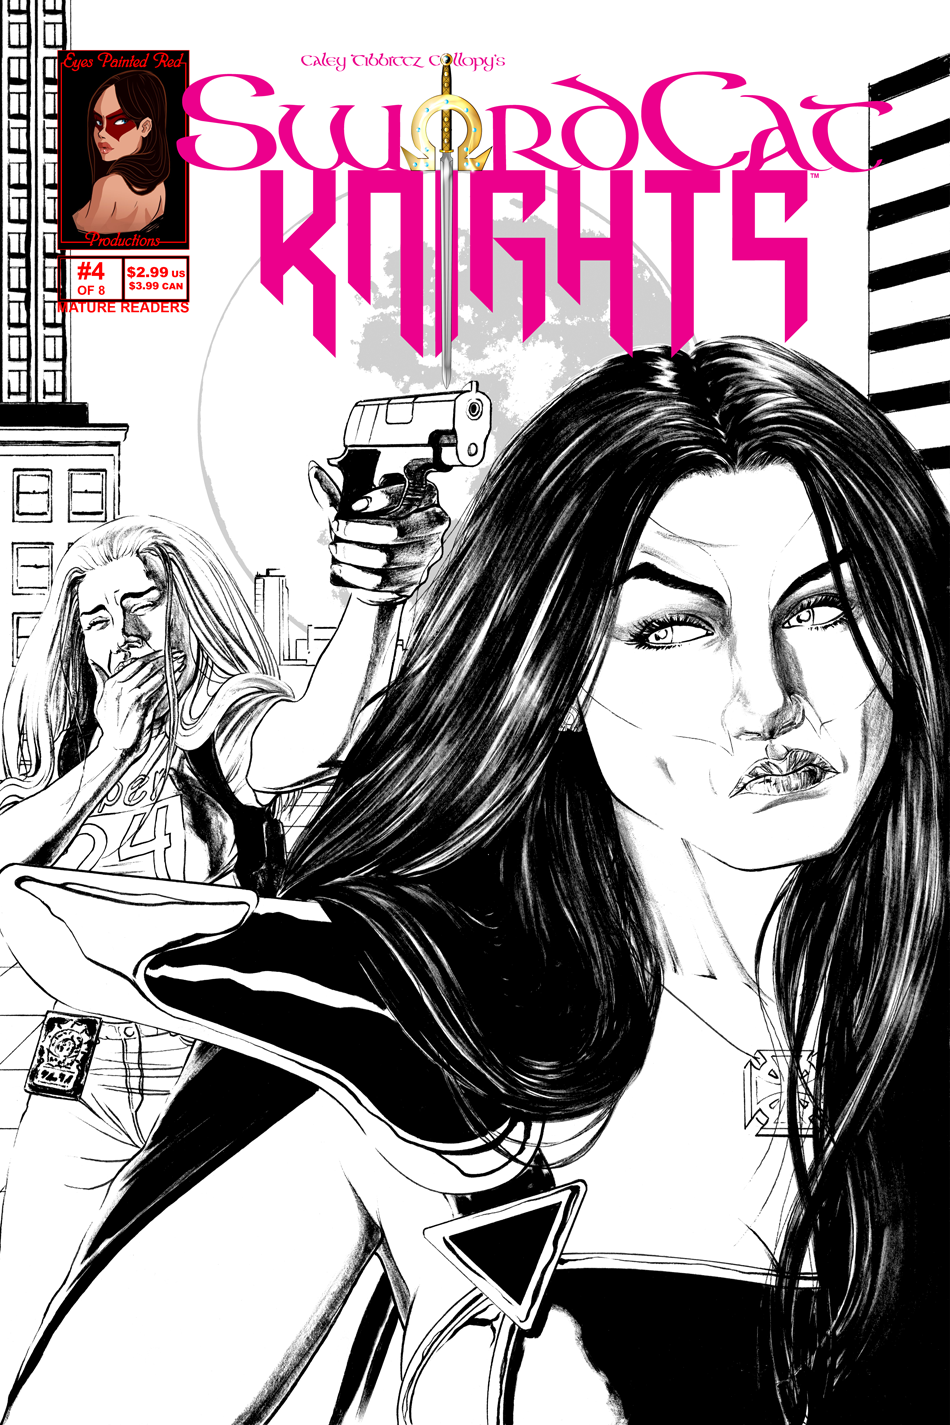 Issue 4 Cover - Worst. Lesbian Romance. EVER.